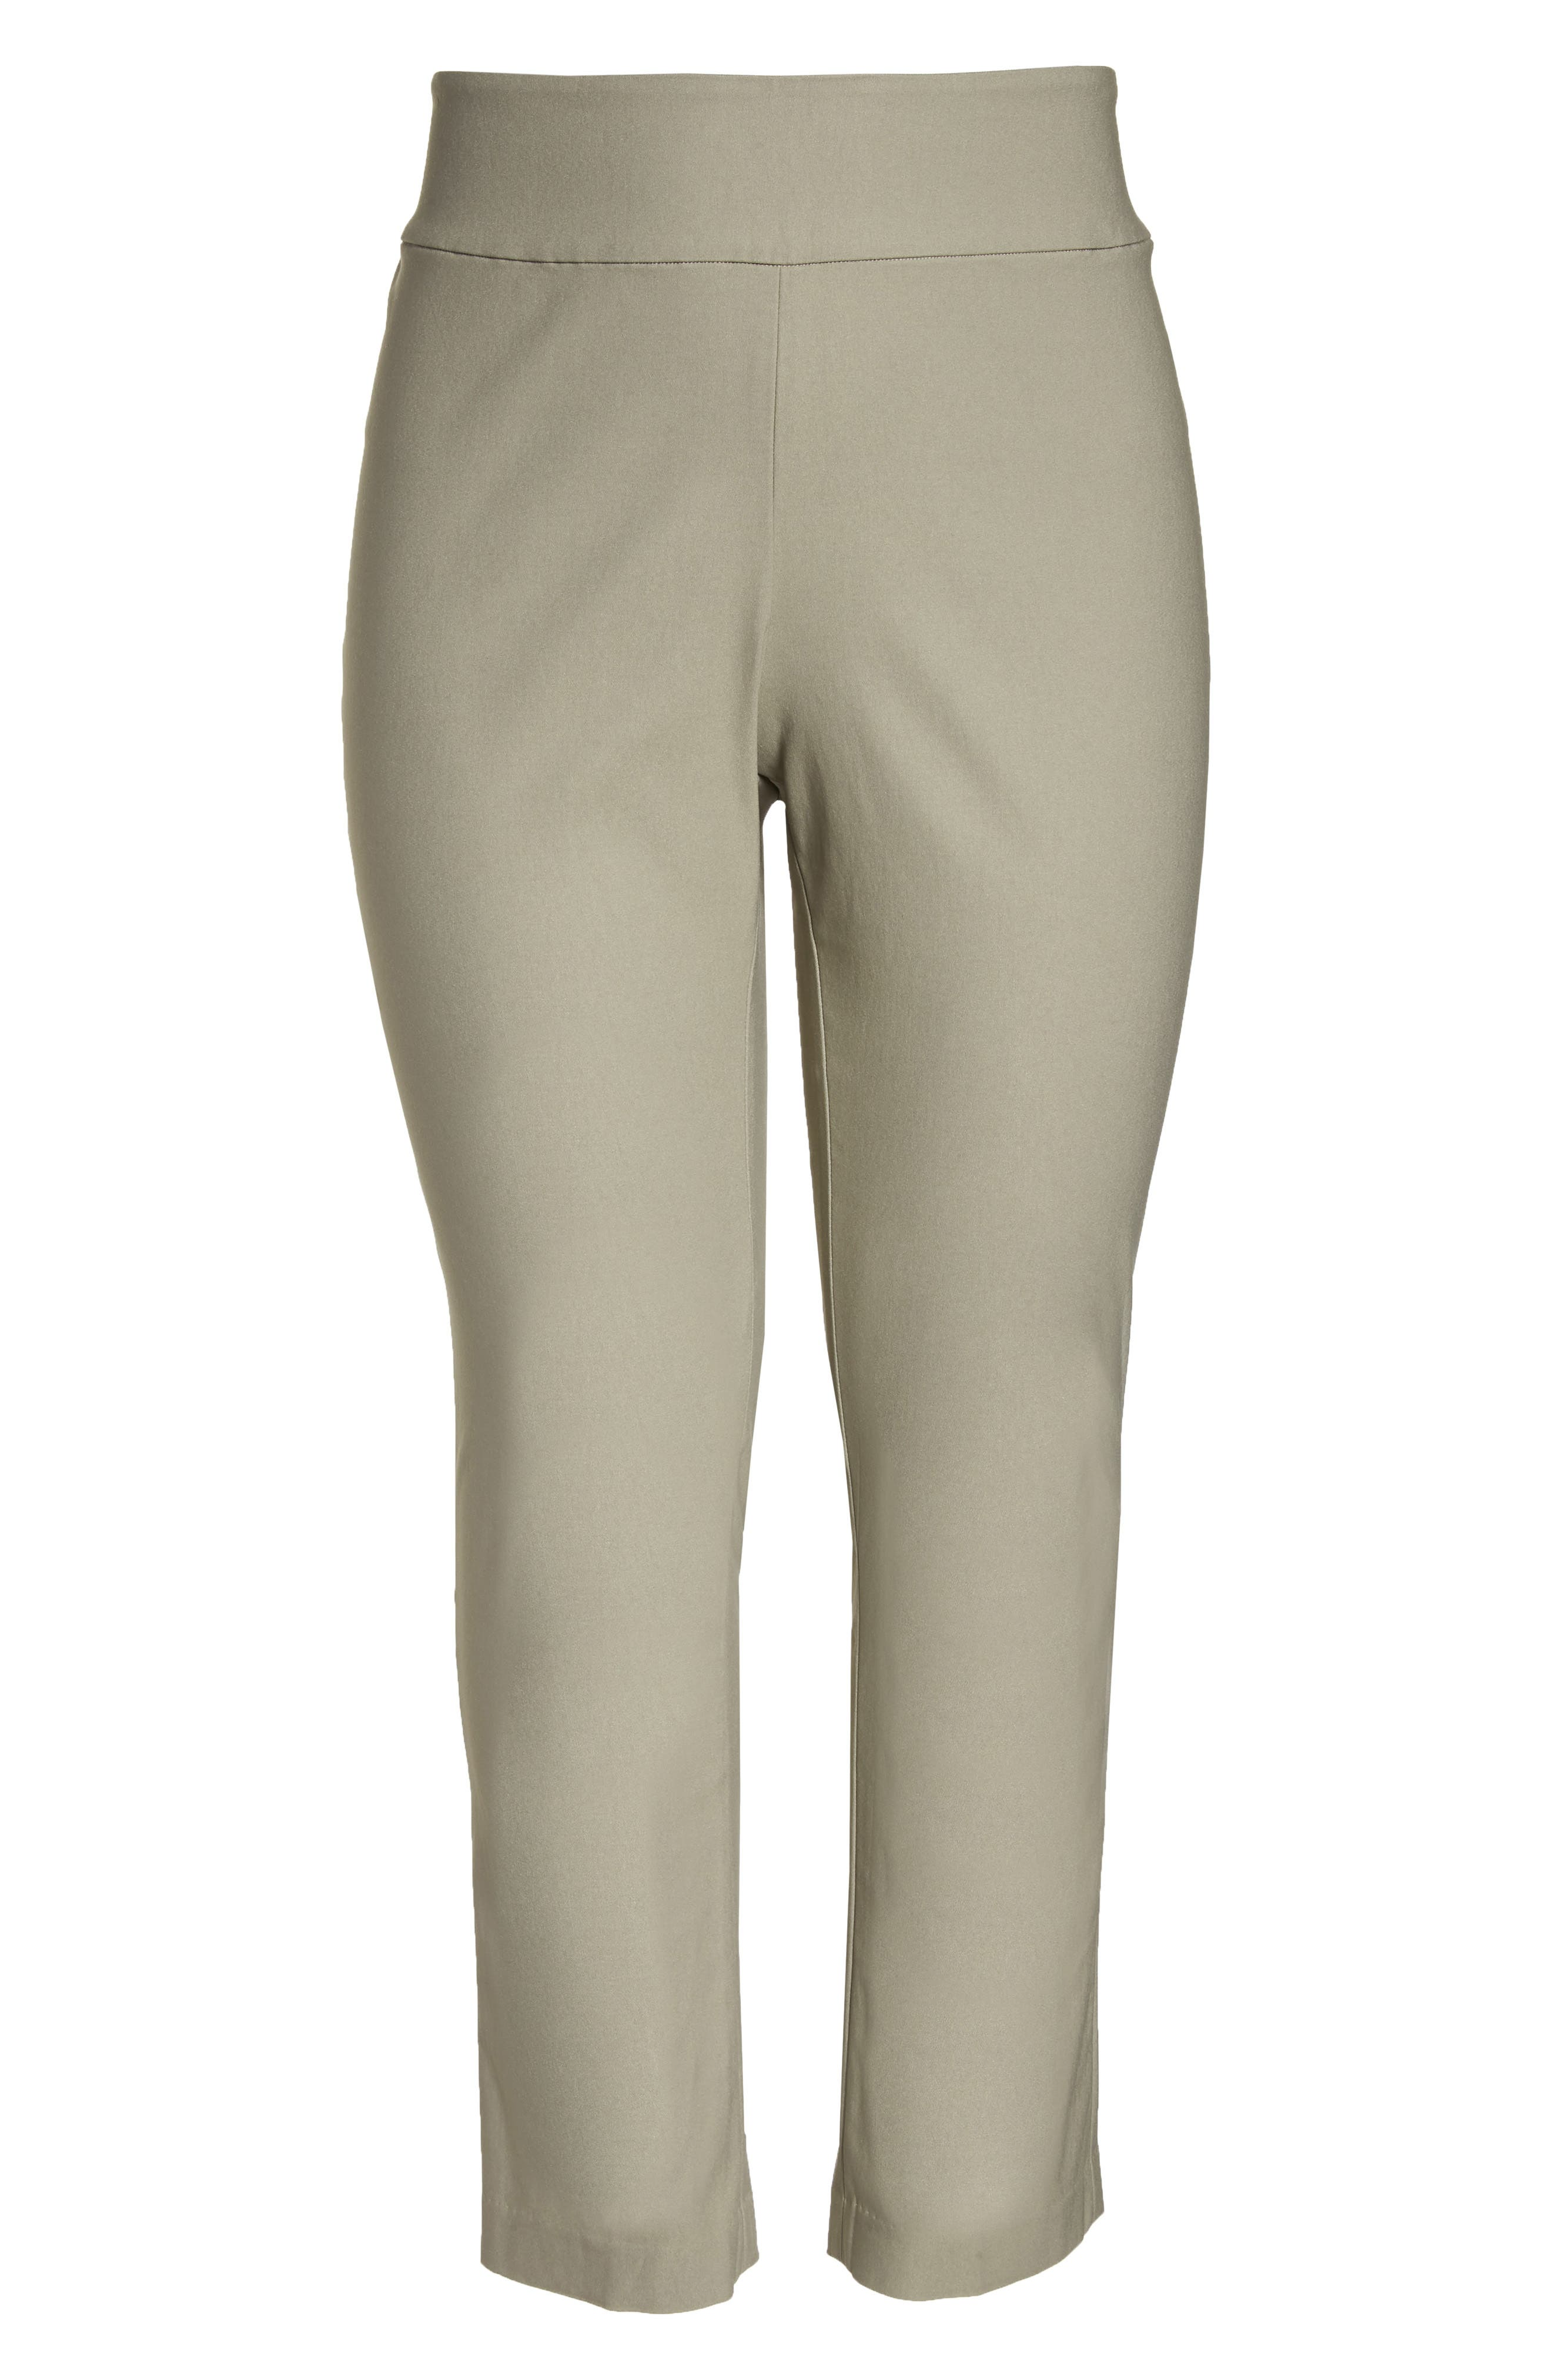 Wonderstretch Pants,                             Alternate thumbnail 7, color,                             Flax